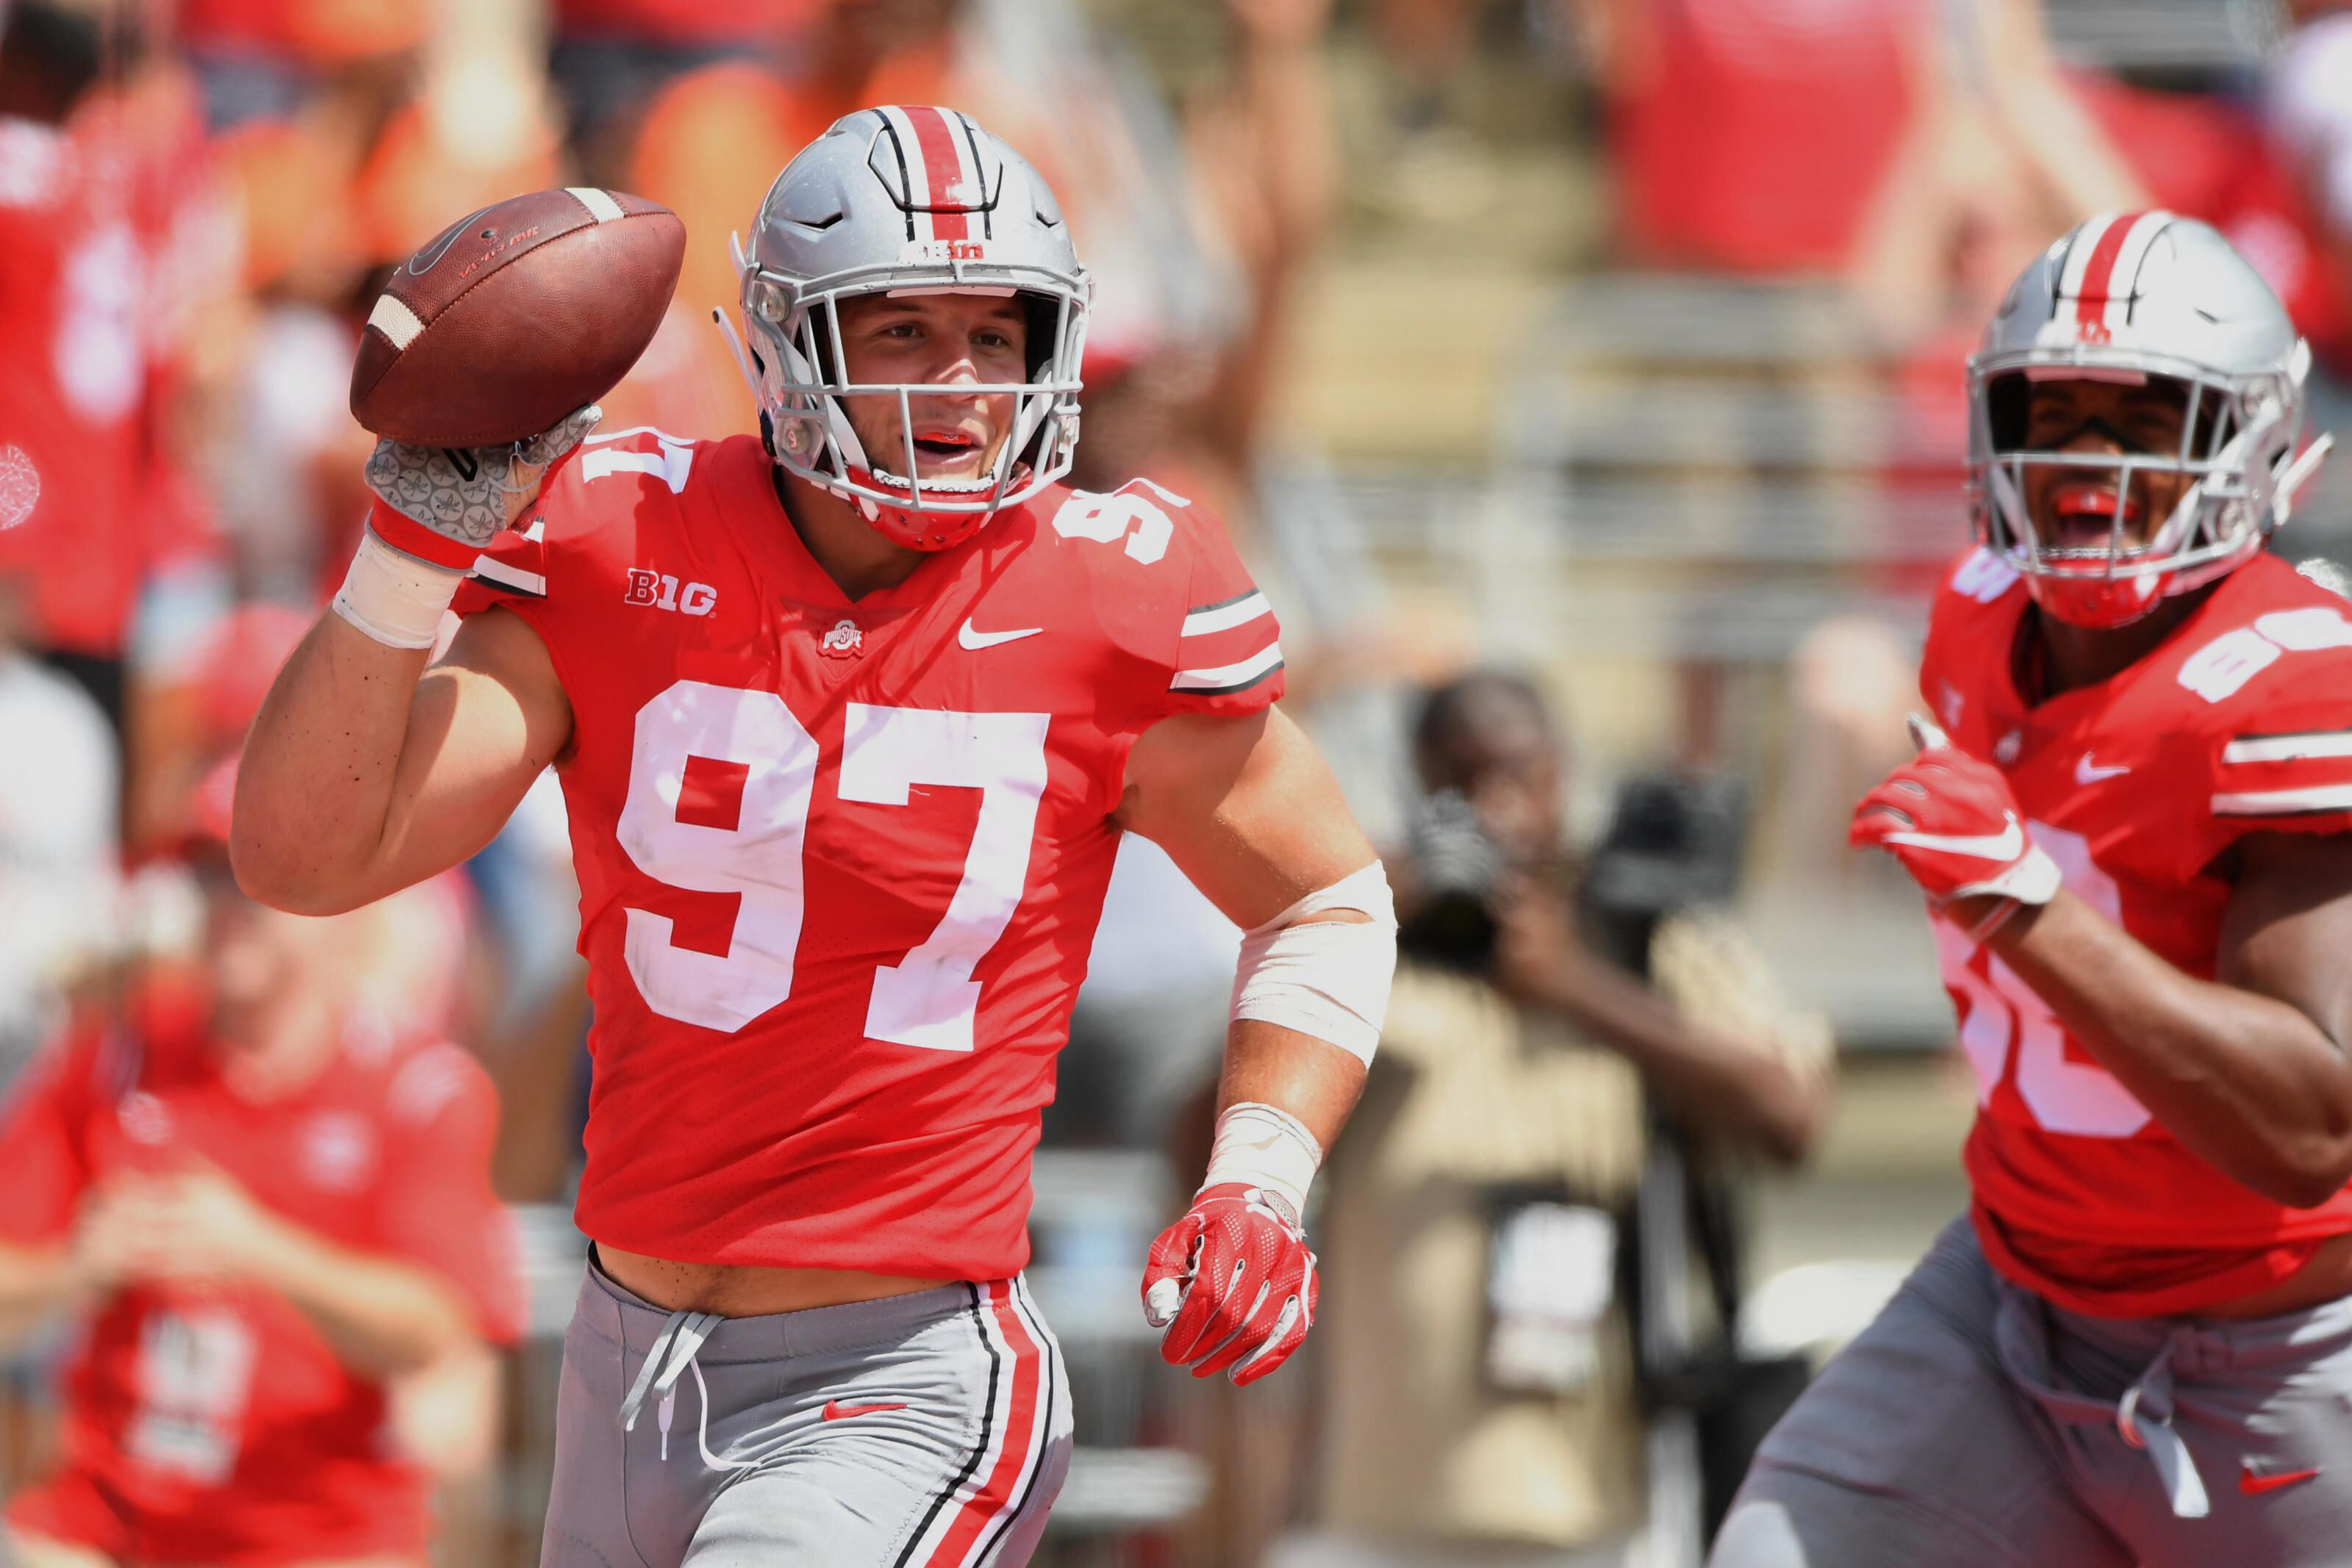 Ohio State football: Nick Bosa going pro means problems for college